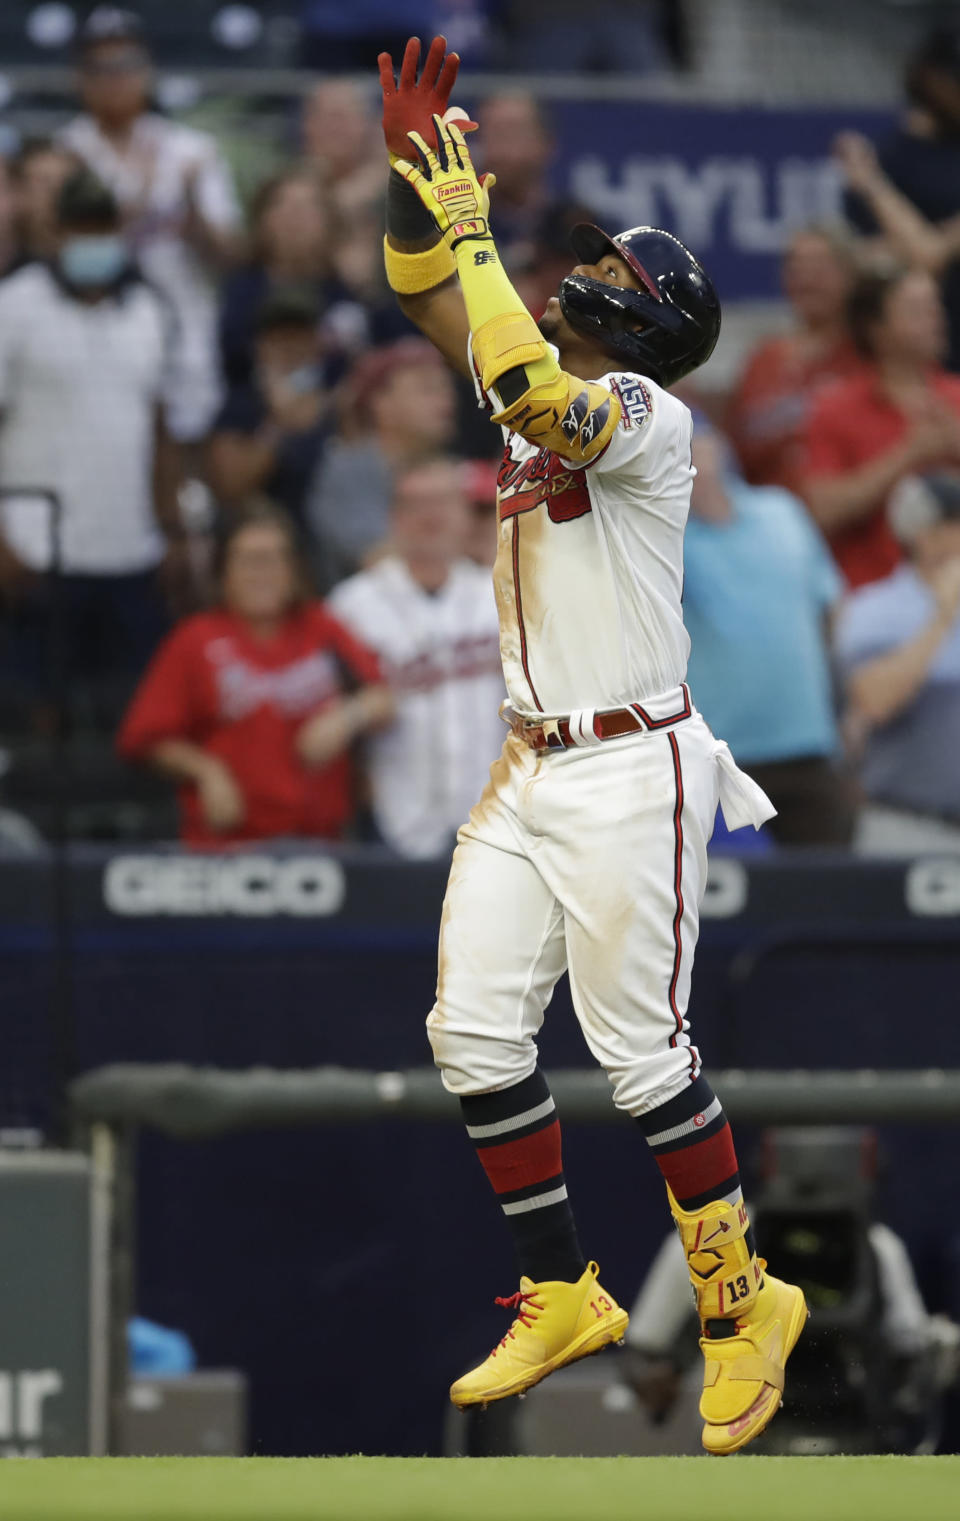 Atlanta Braves' Ronald Acuna Jr. celebrates after hitting a home run off Toronto Blue Jays pitcher Robbie Ray in the third inning of a baseball game Tuesday, May 11, 2021, in Atlanta. (AP Photo/Ben Margot)